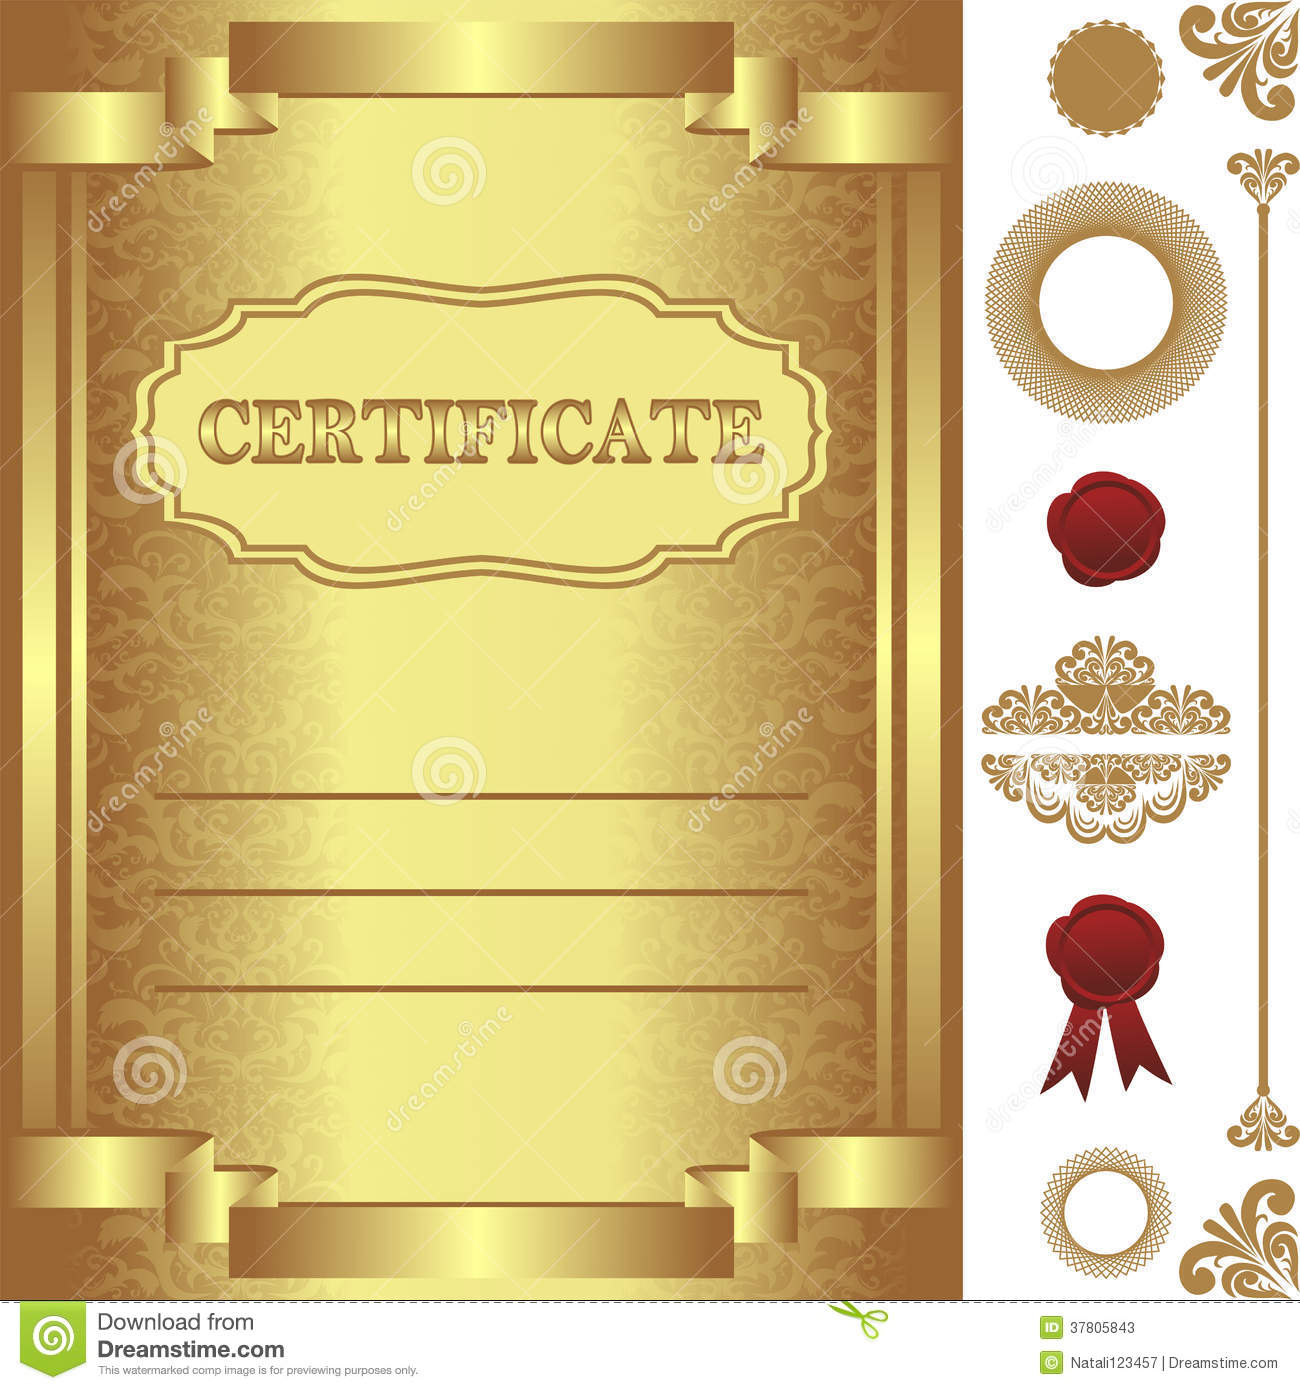 Golden Certificate Template With Additional Elements ...